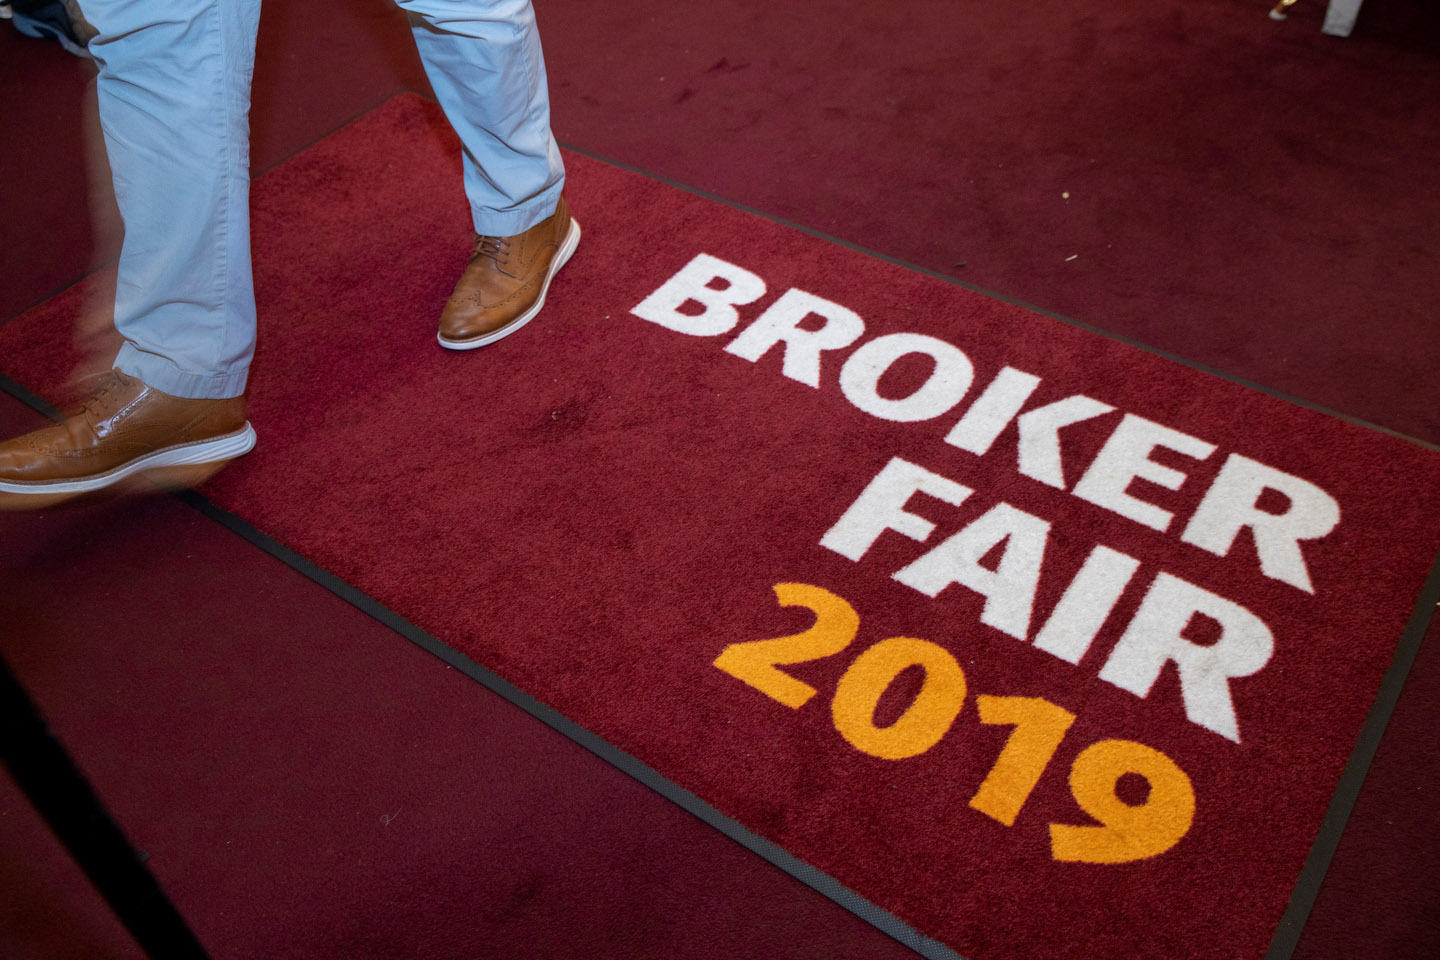 Broker Fair 2019 - Presented by deBanked - 313